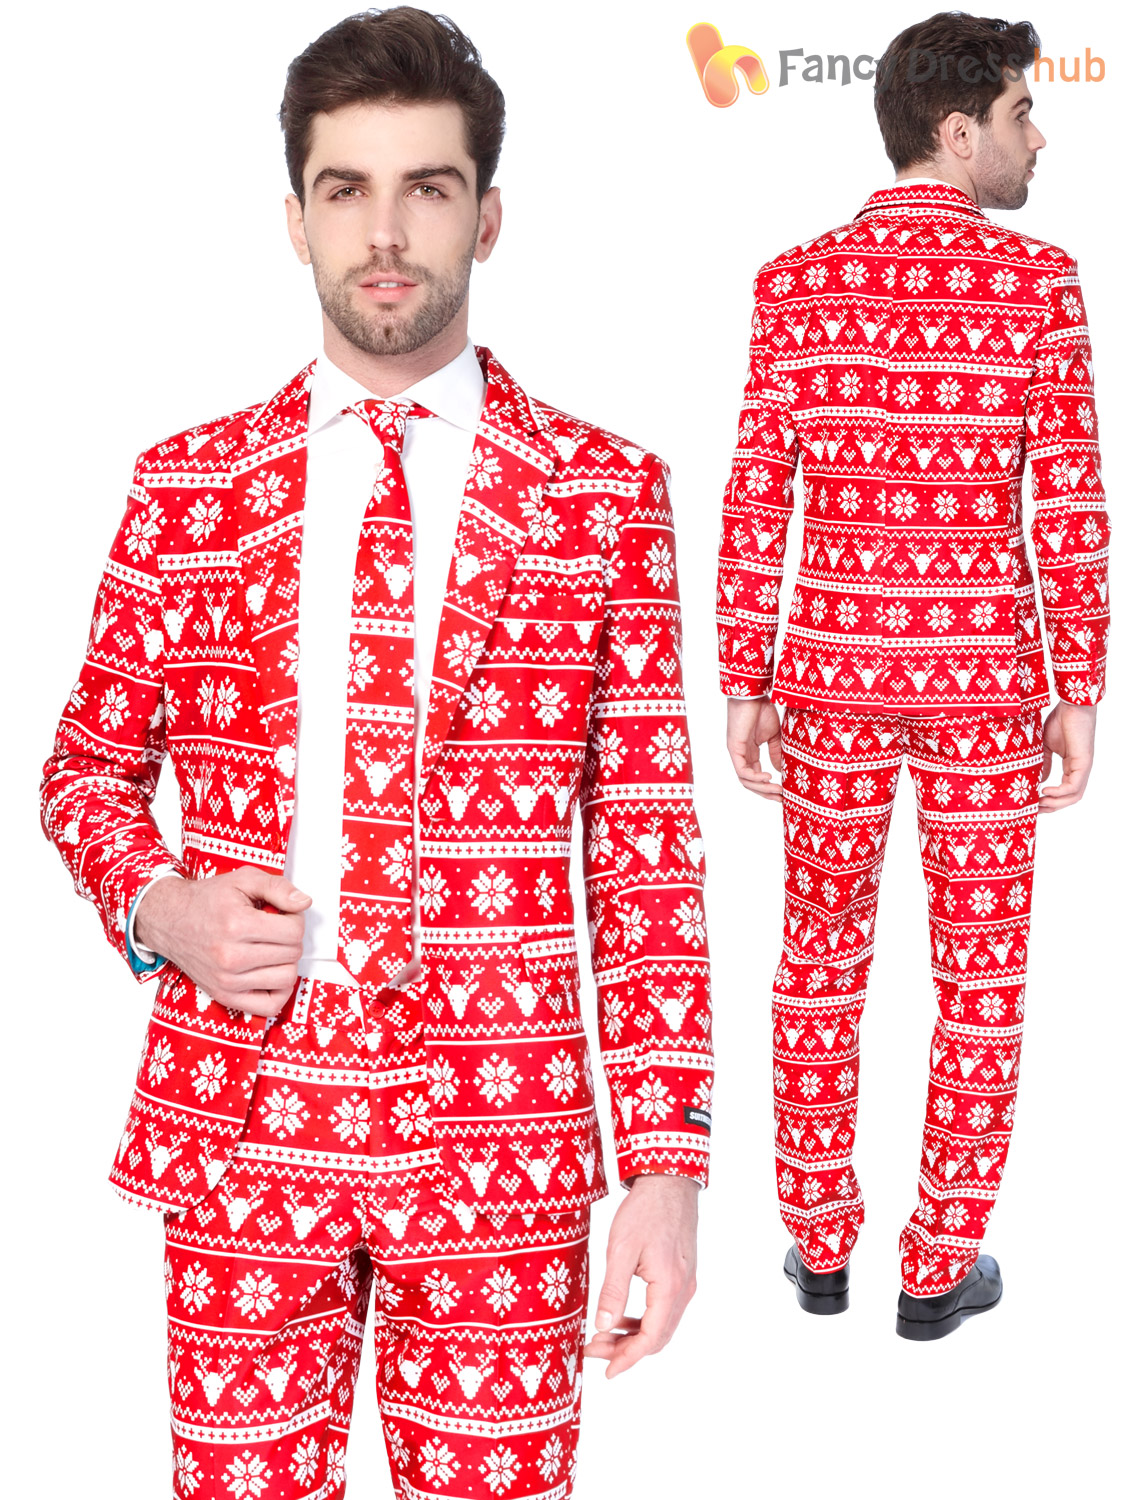 Herrenmode Festlich Mens Christmas Tree Suitmeister Suit Xmas Party Festive